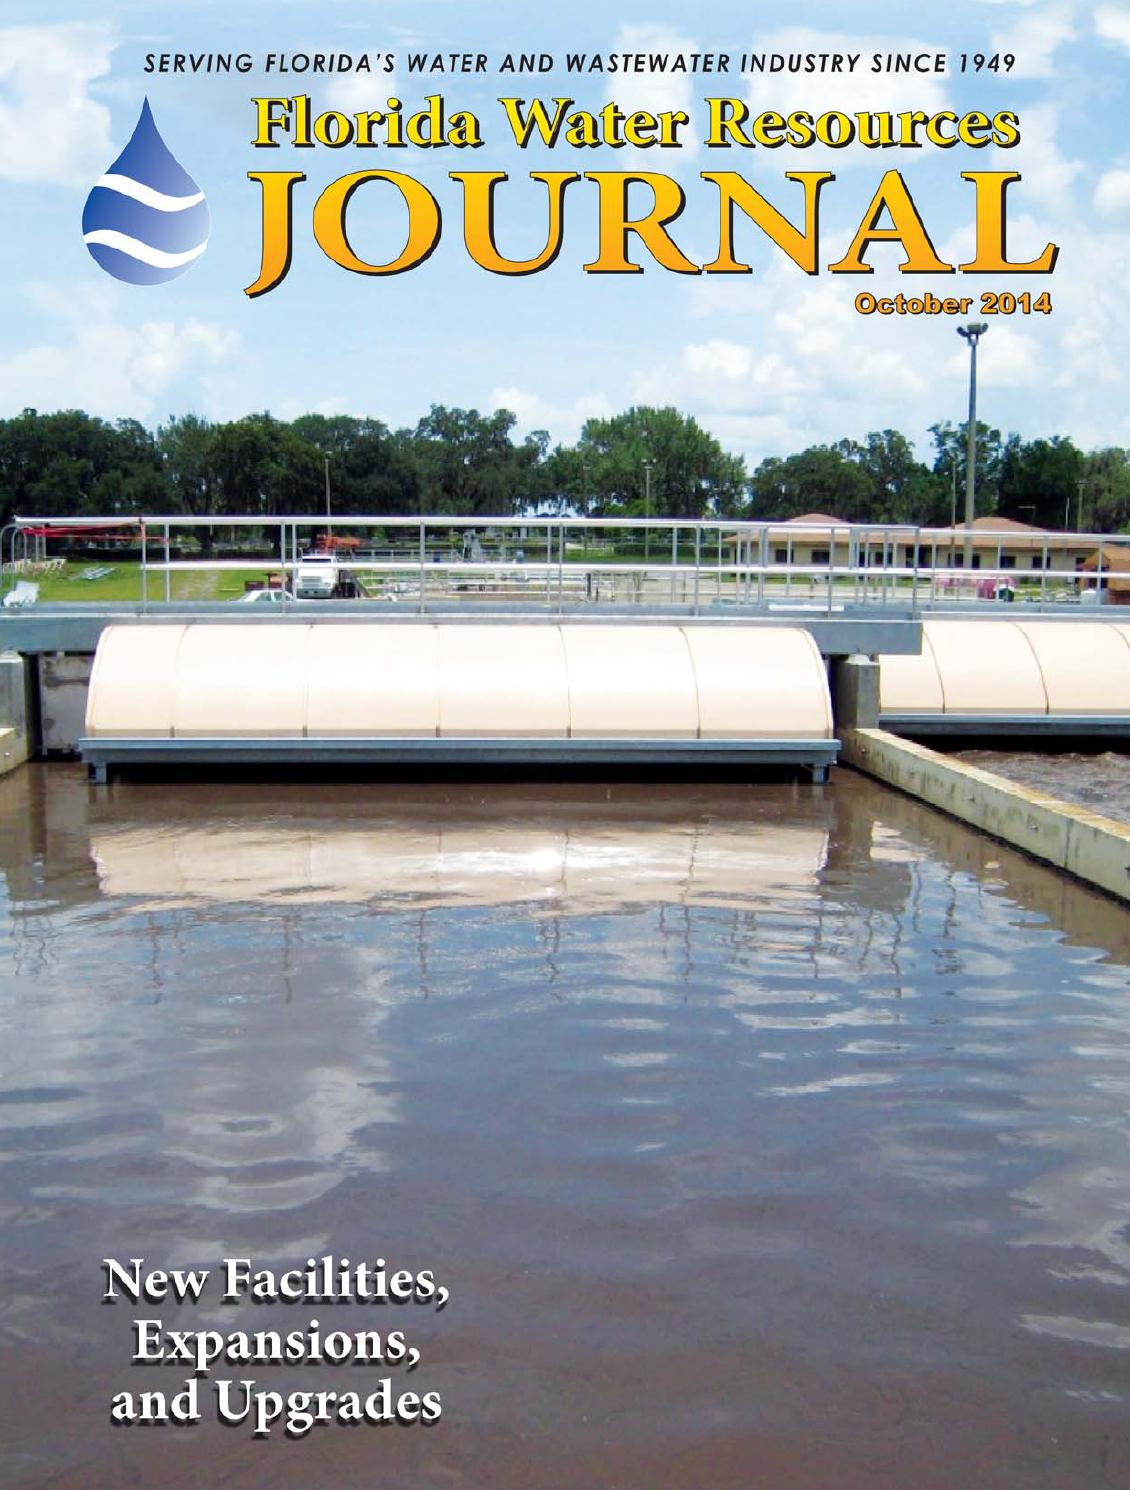 florida water resources journal october 2014 by florida water